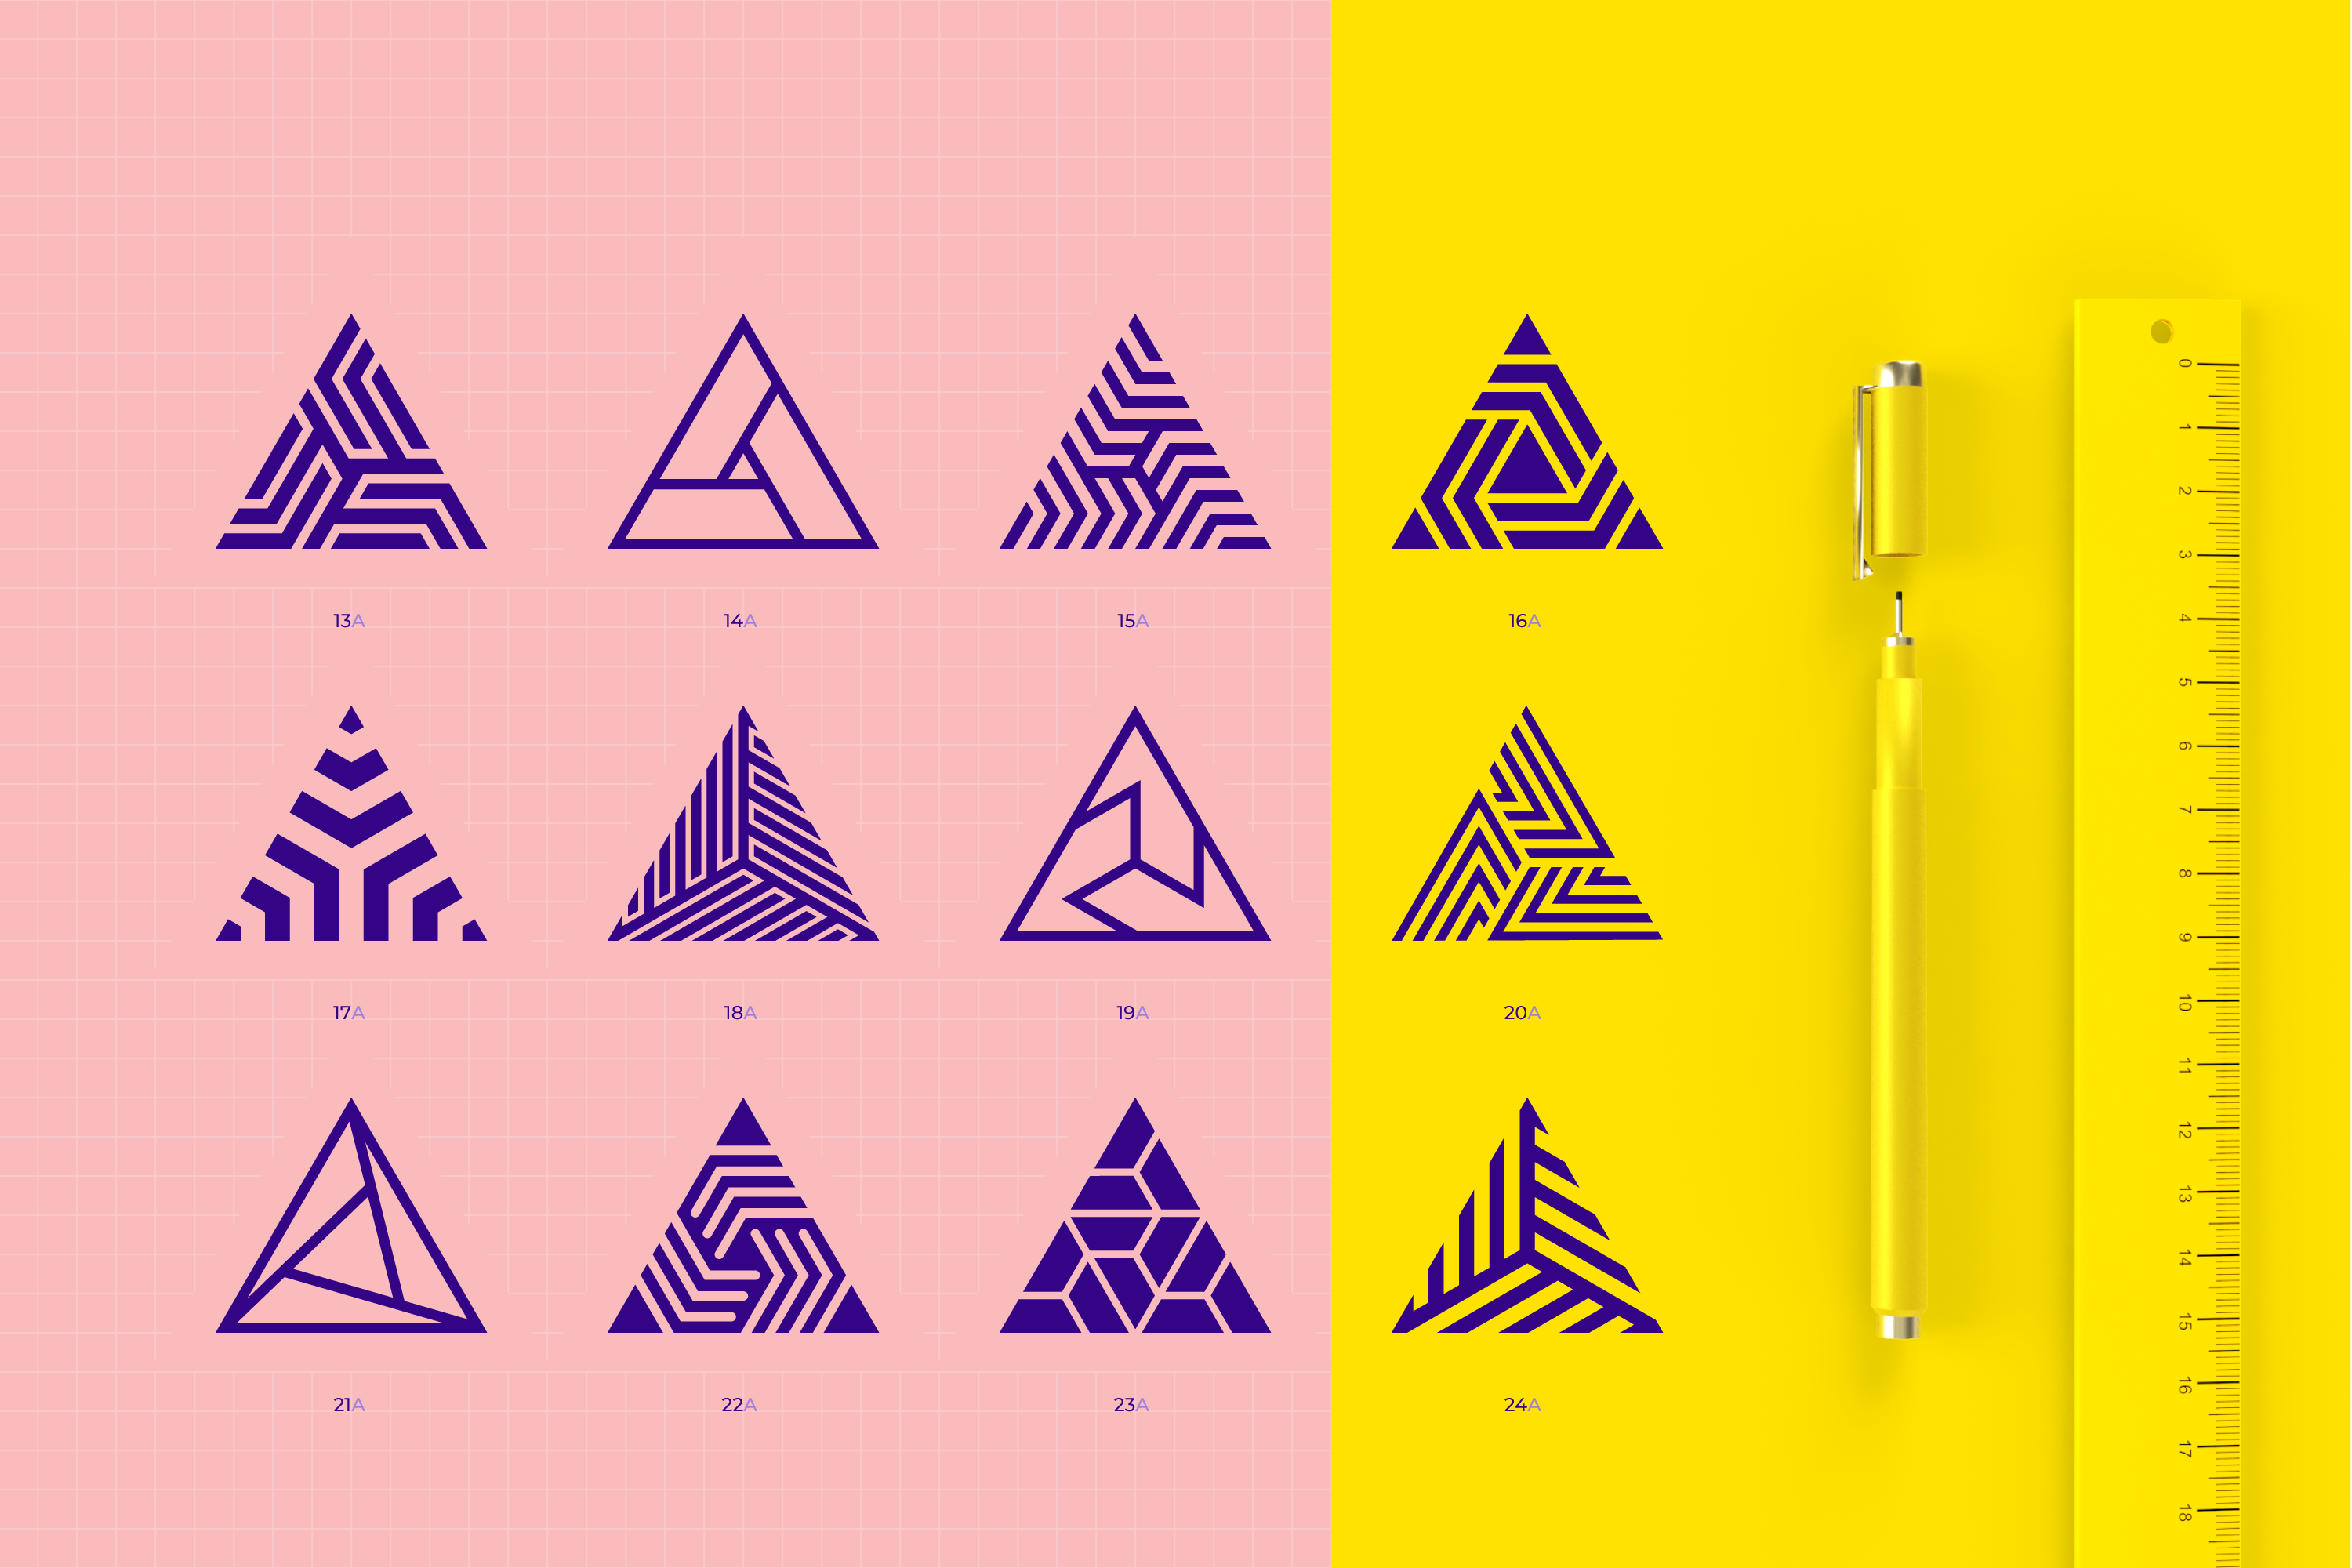 96 Geometric shapes & logo marks collection VOL.1 example image 5